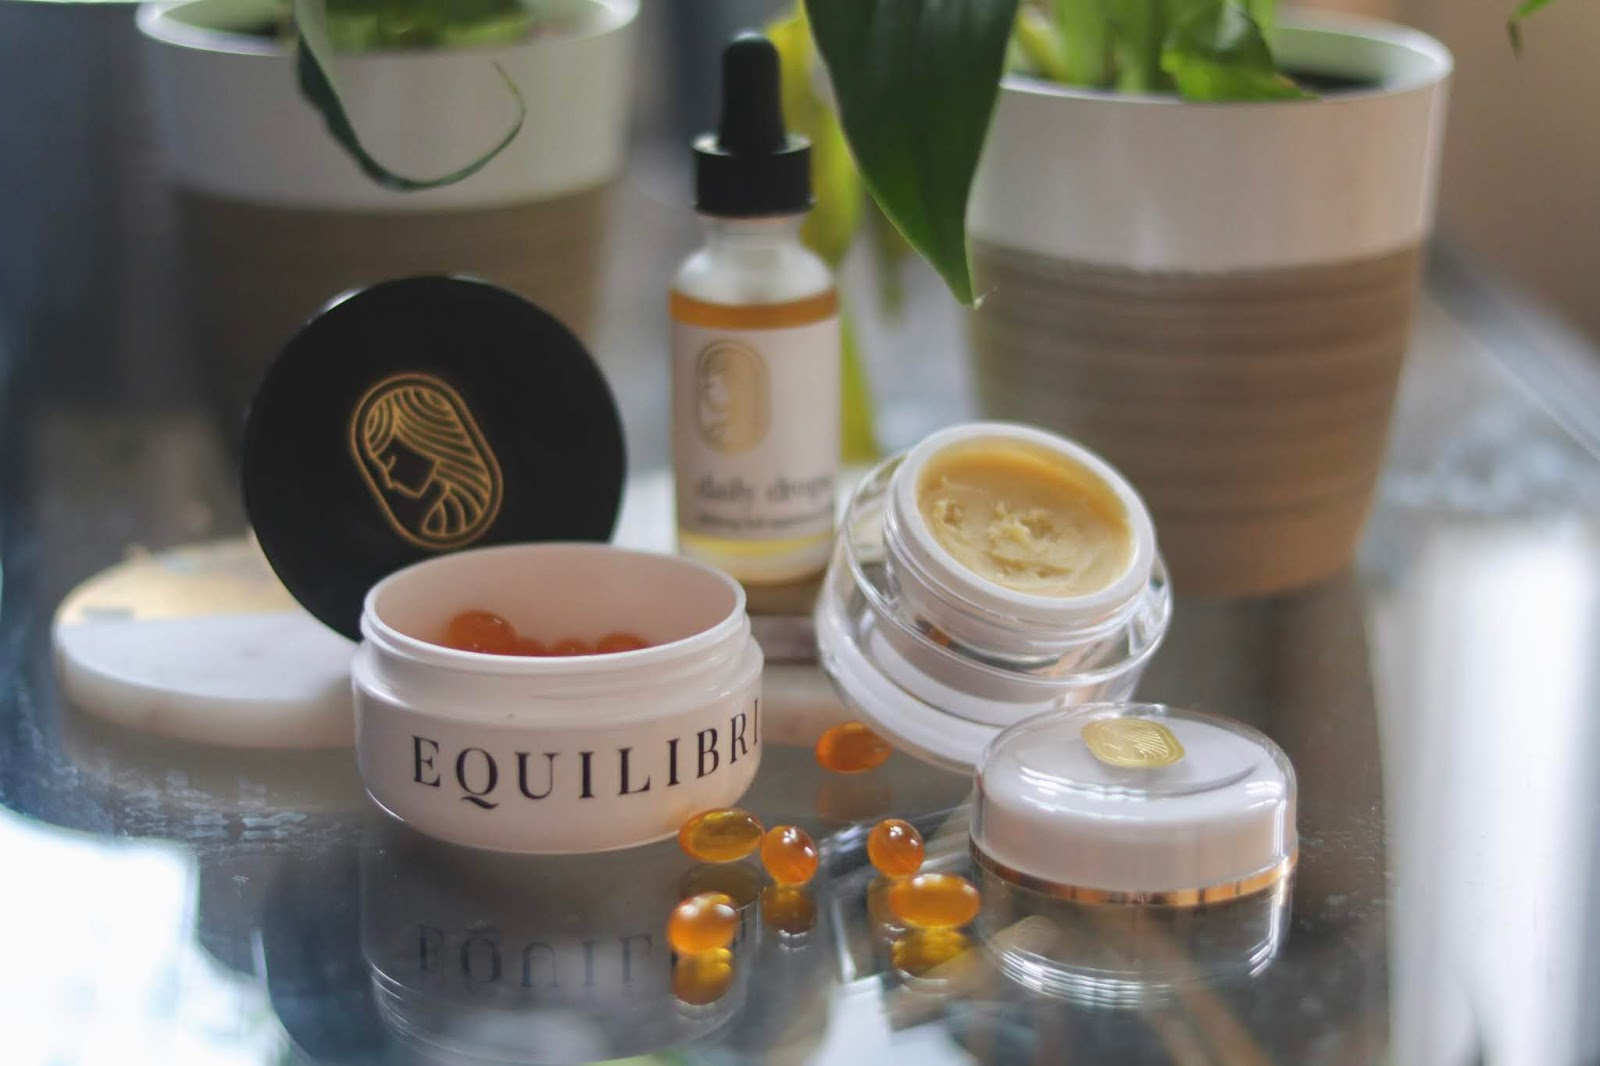 Chicago Plus Size Petite Fashion Blogger, influencer, YouTuber, and model Natalie Craig, of Natalie in the City, reviews Chicago-based woman-owned CBD brand Equilibria.